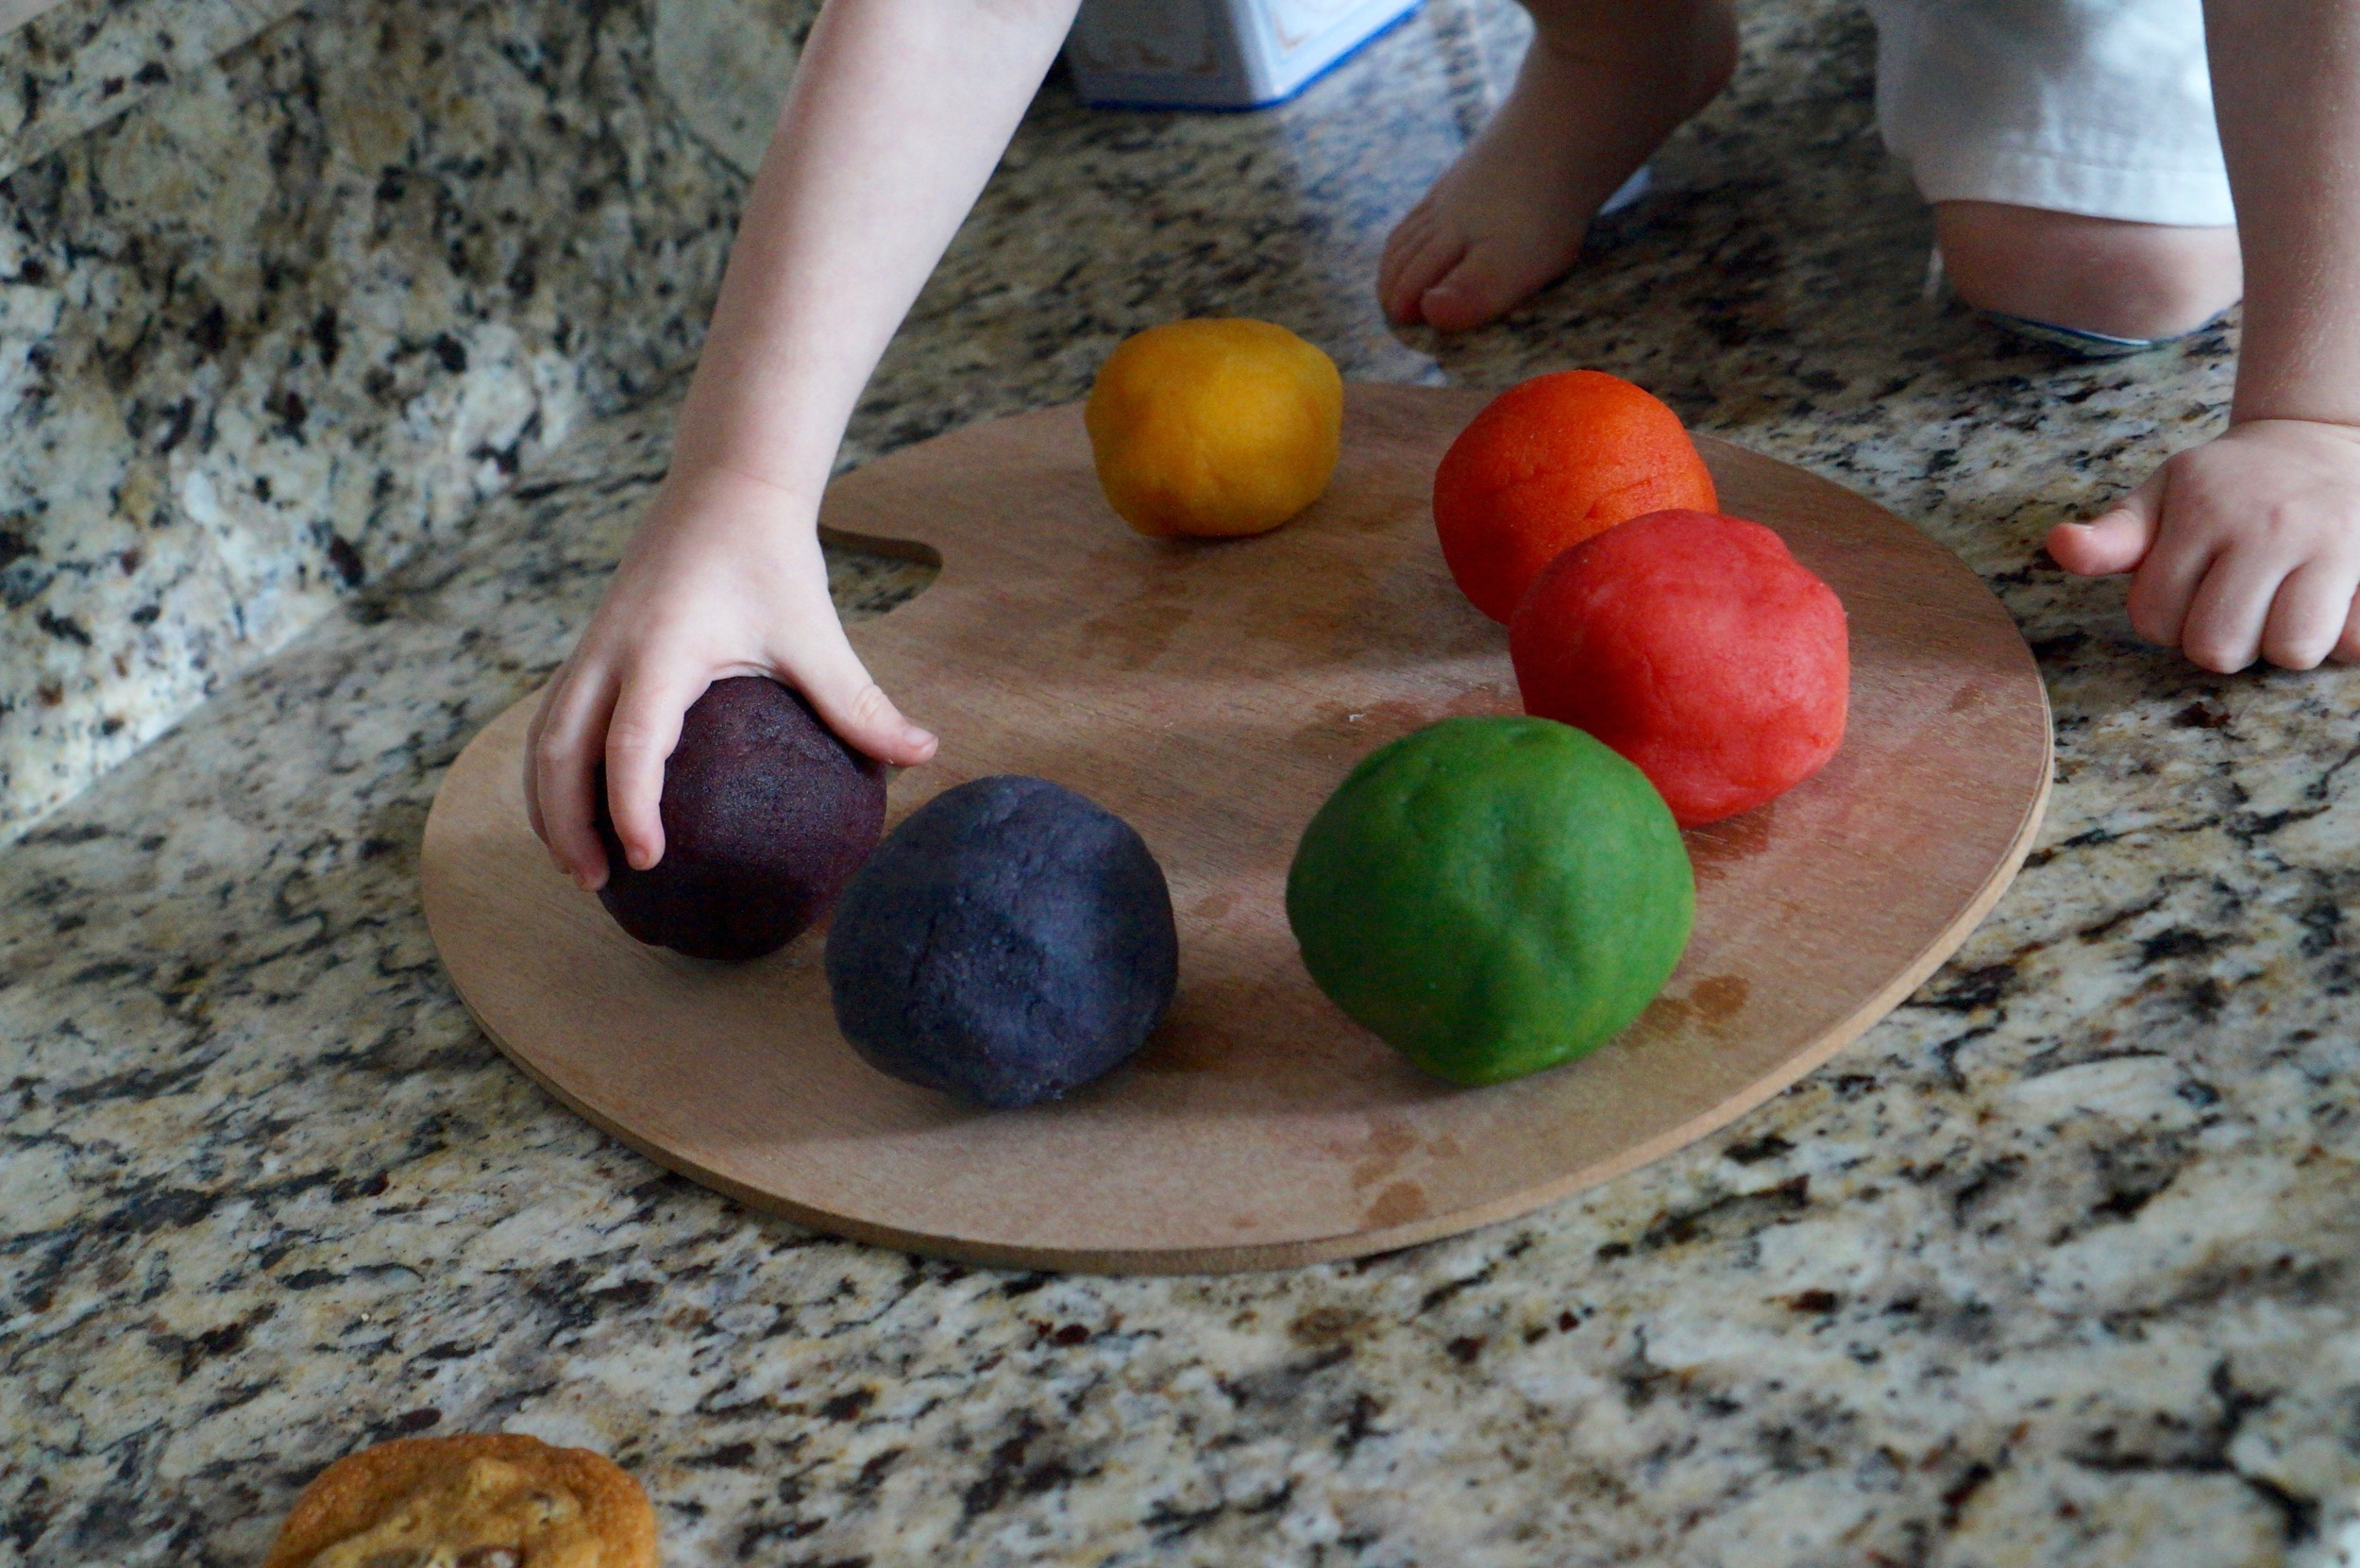 Almond paste + food coloring makes beautiful play dough.